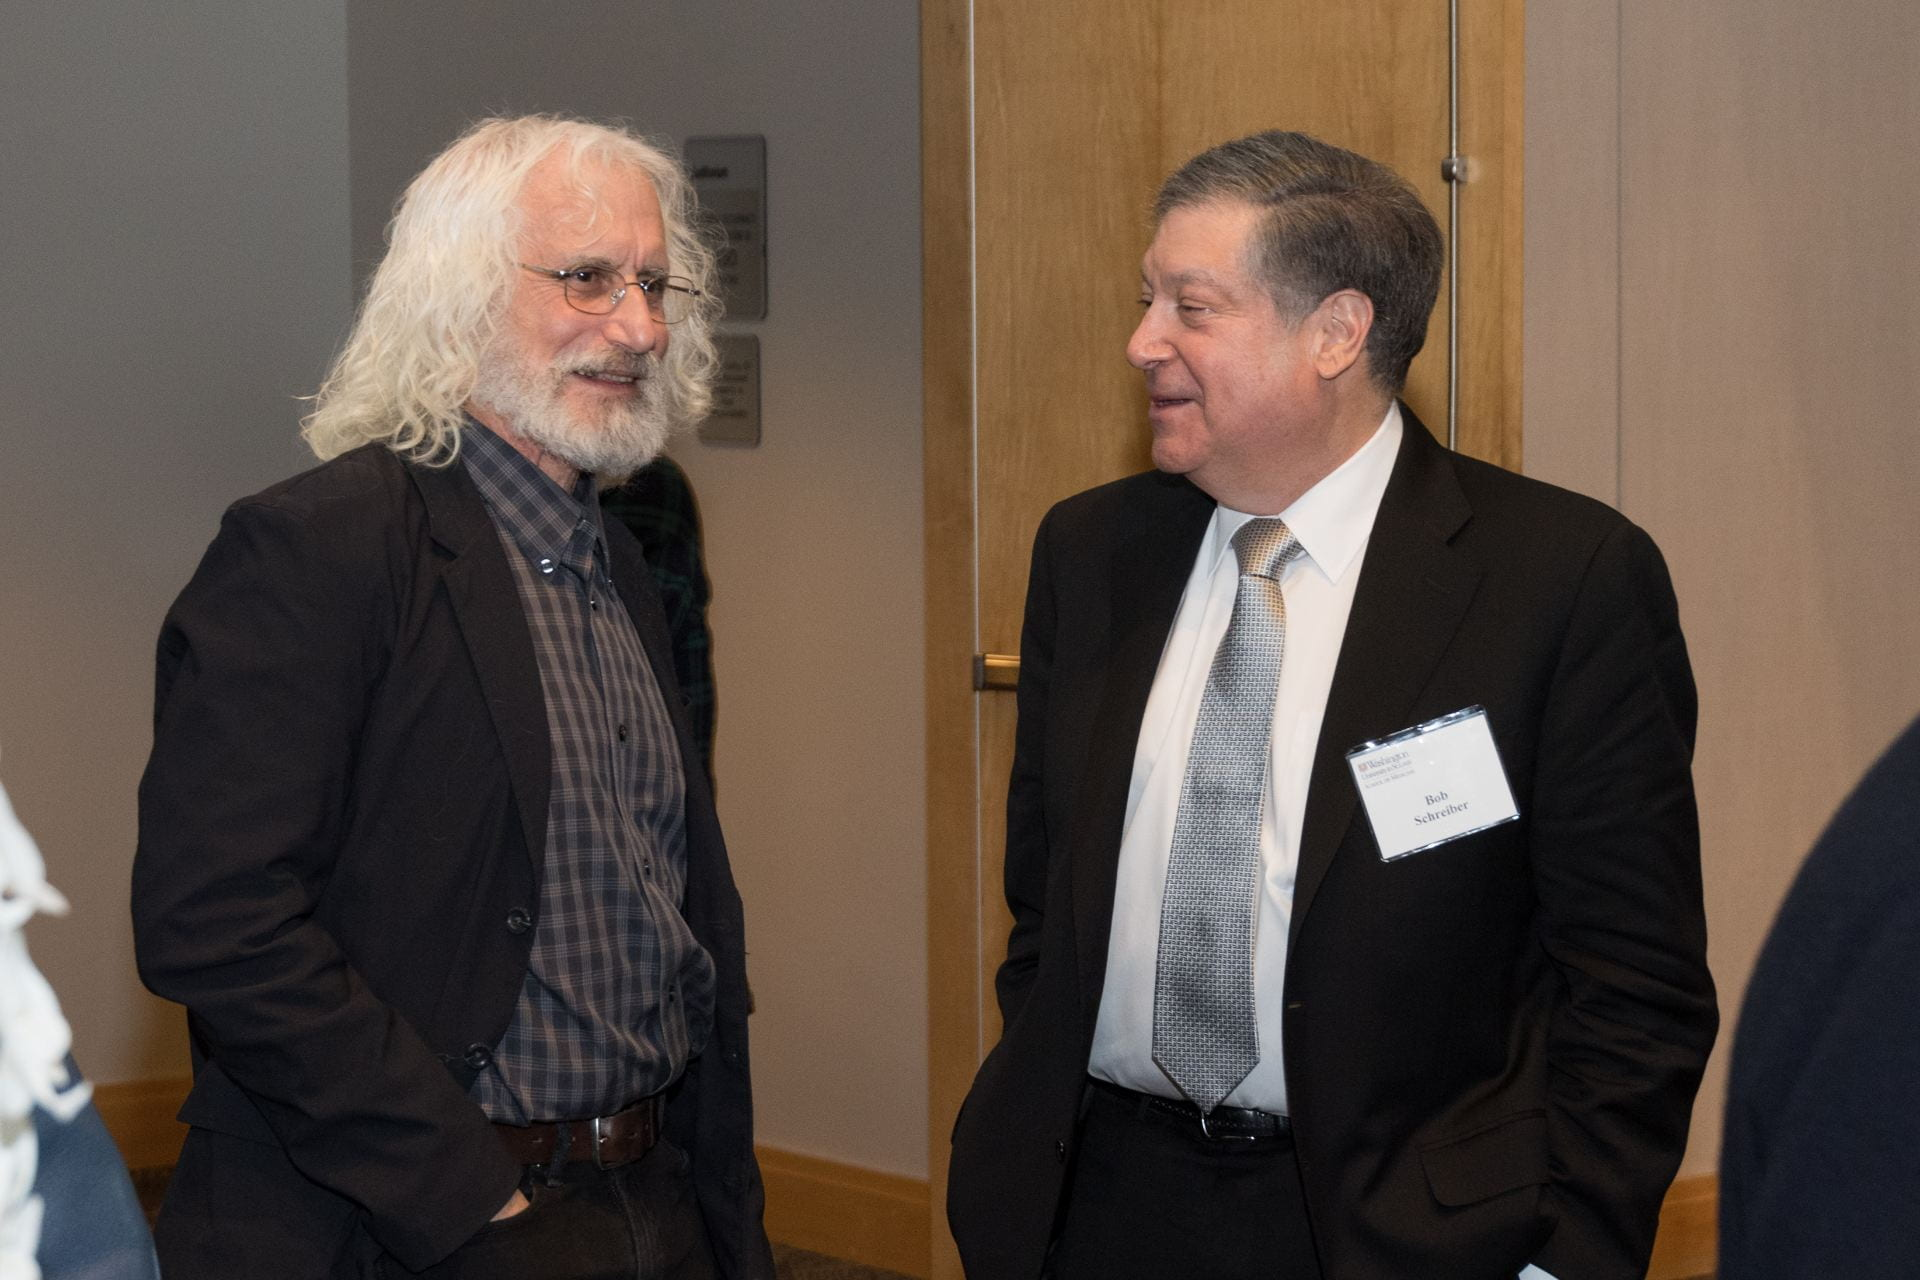 Special Guest Dr. Phil Greenberg (Head of Immunology at University of Washington-Seattle) and Bob Schreiber